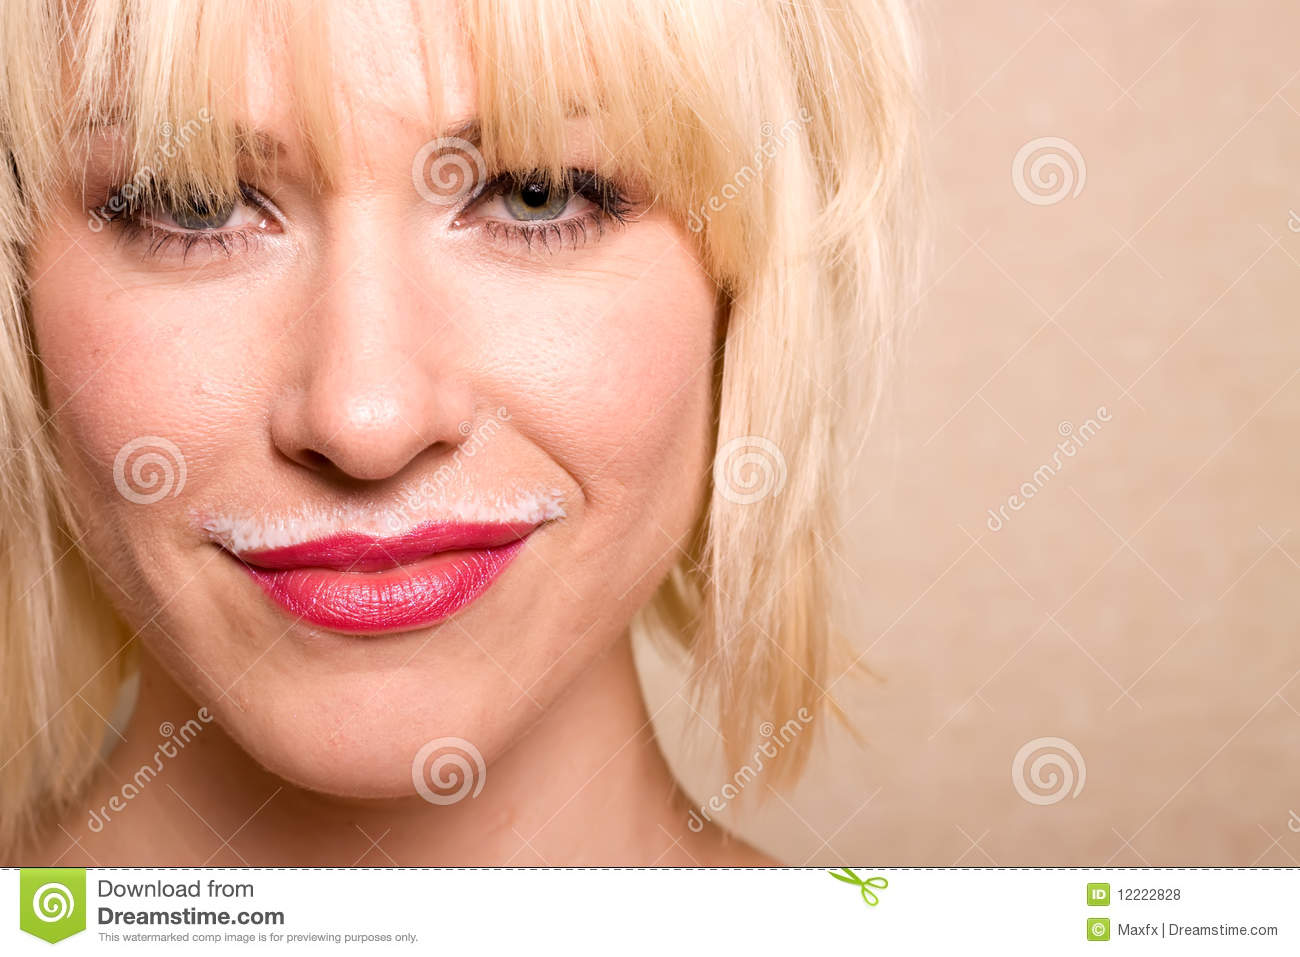 Milk Moustache Stock Photos and Pictures   Getty Images